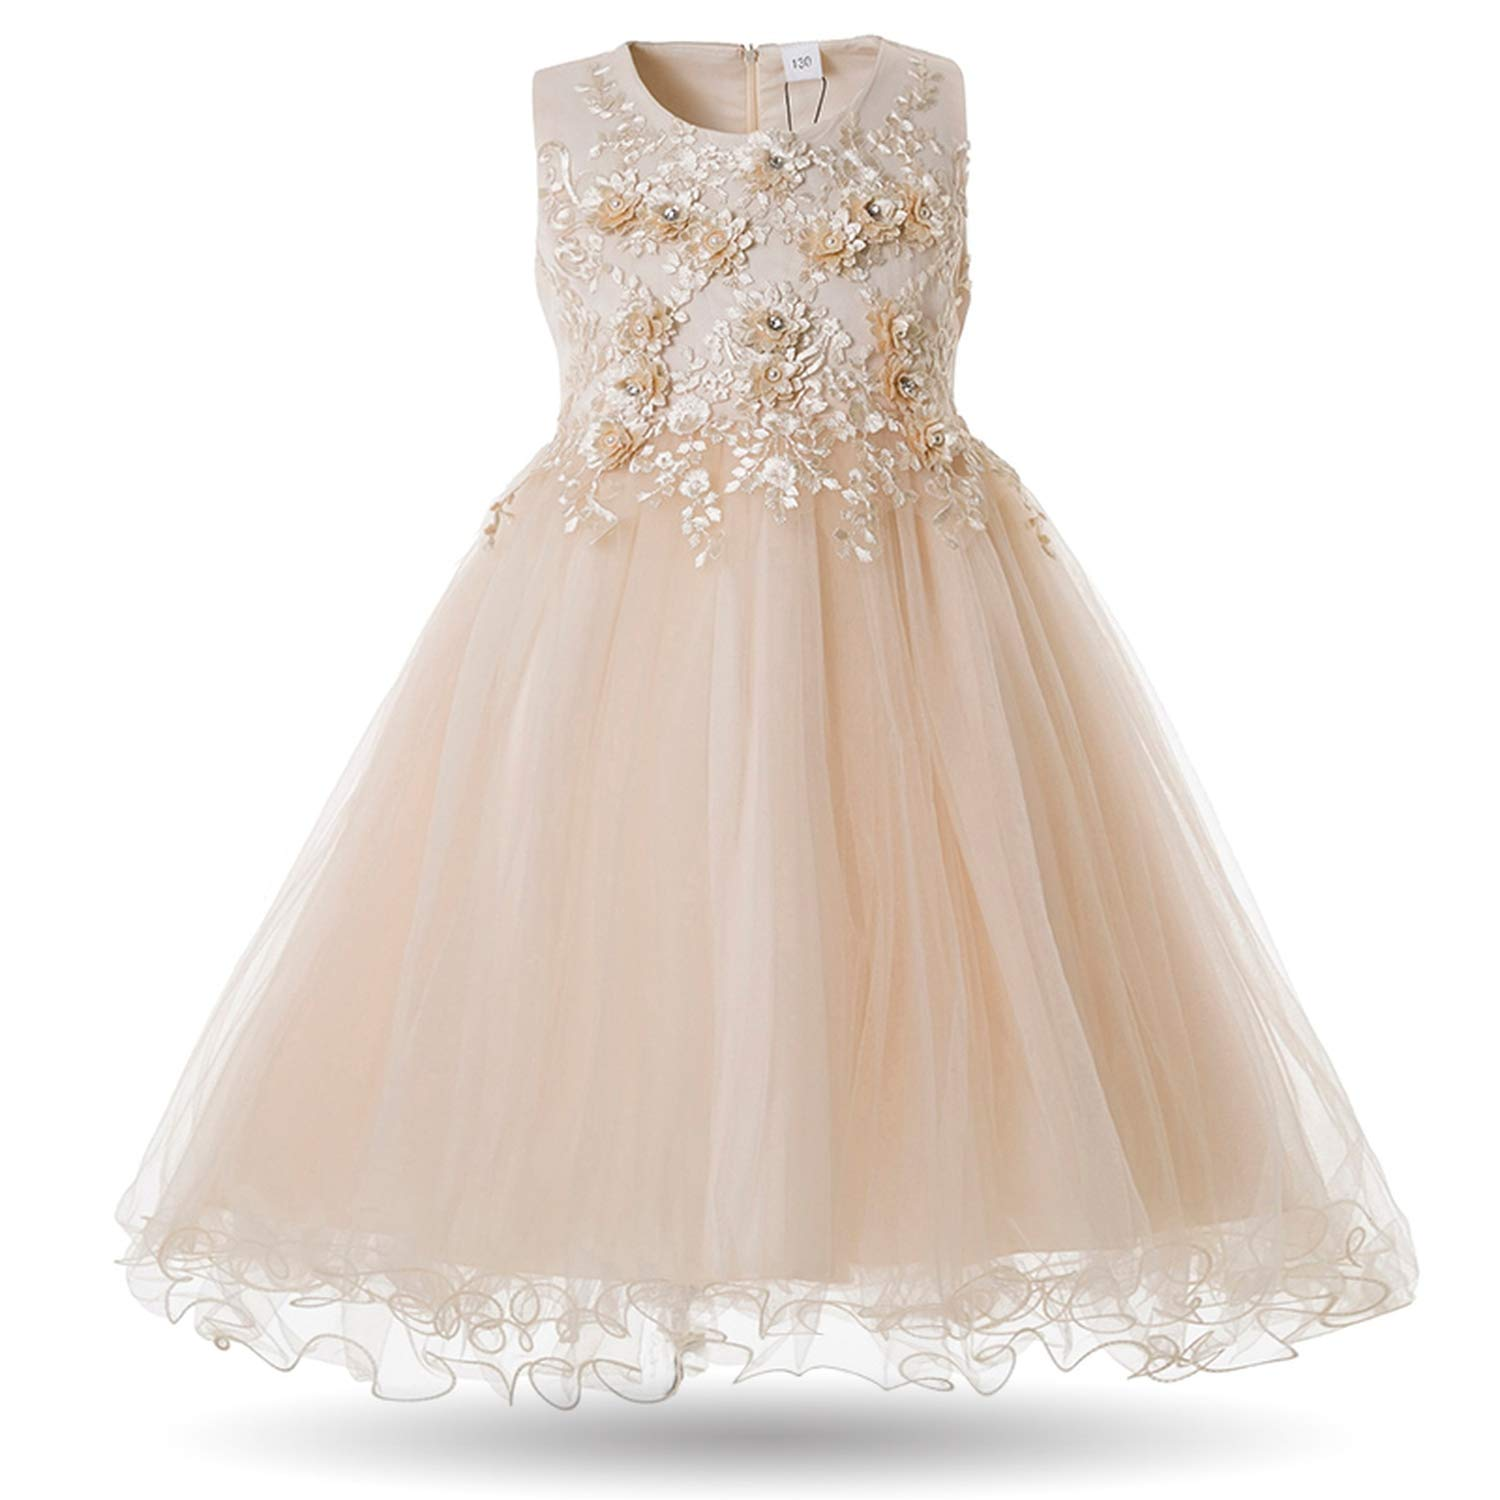 Nice Warm Flower Girls Dress Wedding Party Dresses for Kids Pearls Formal Ball Gown Evening Baby Outfits Tulle Girl Frocks,Yellow,9